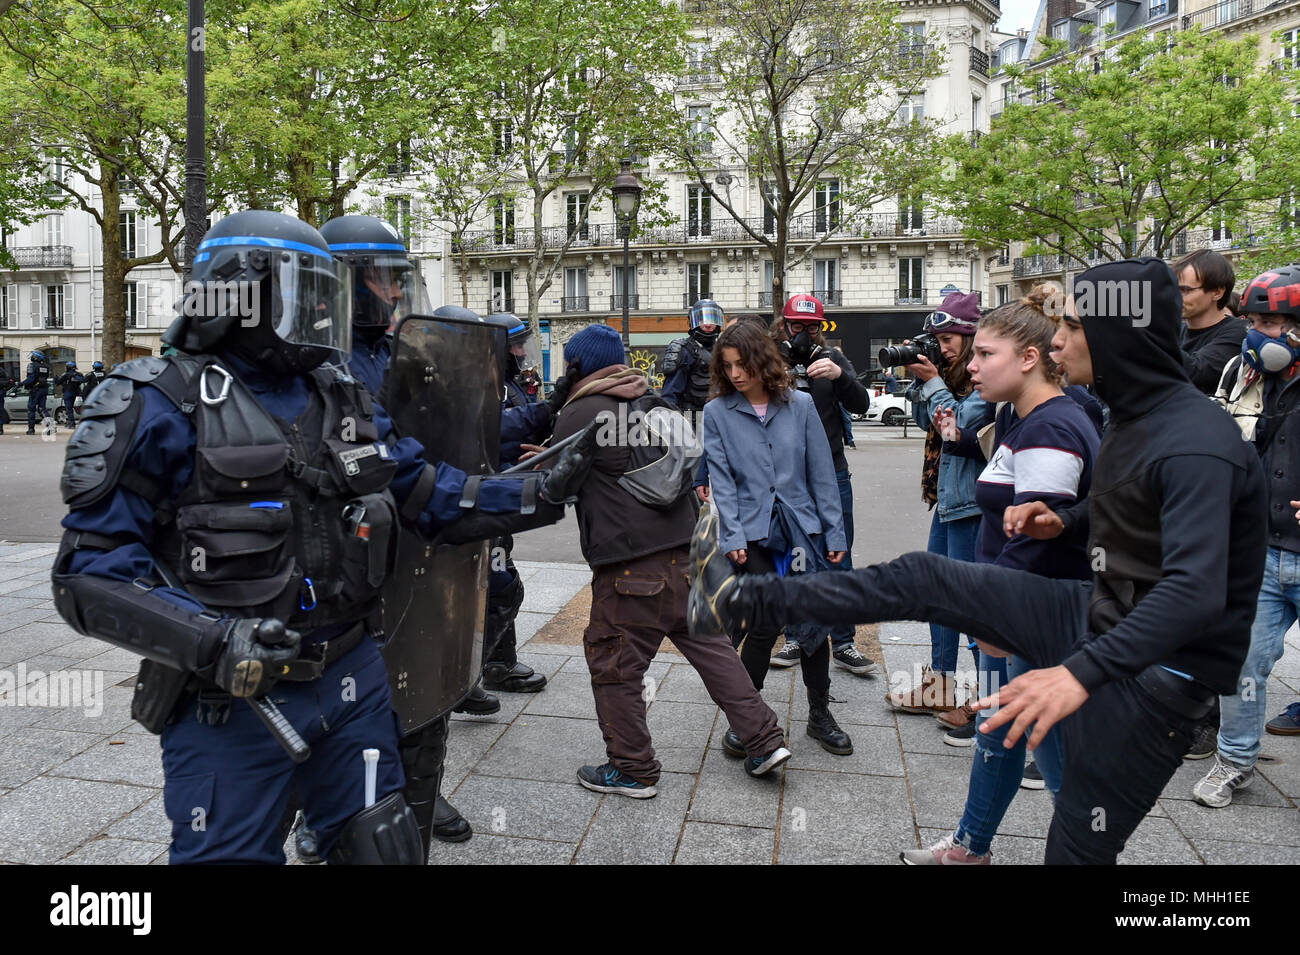 Paris, France. 1st May 2018. Paris police clash with protesters as demonstrations turn violent. Credit: Peter Manning/Alamy Live News - Stock Image